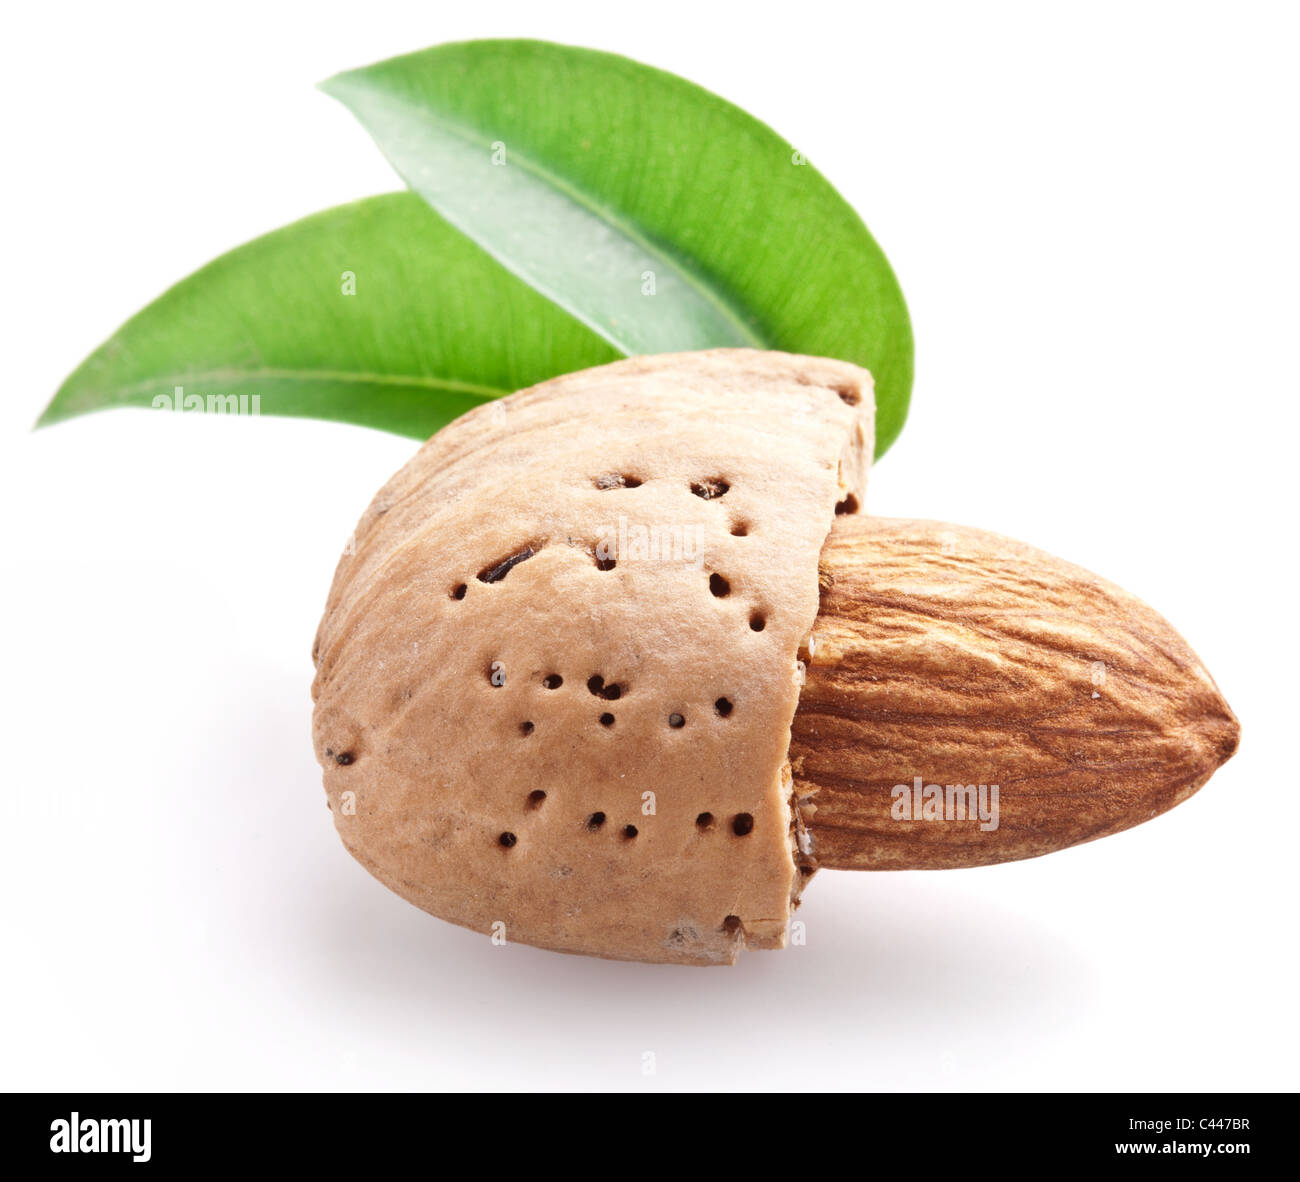 Open almond nut with leaves - Stock Image